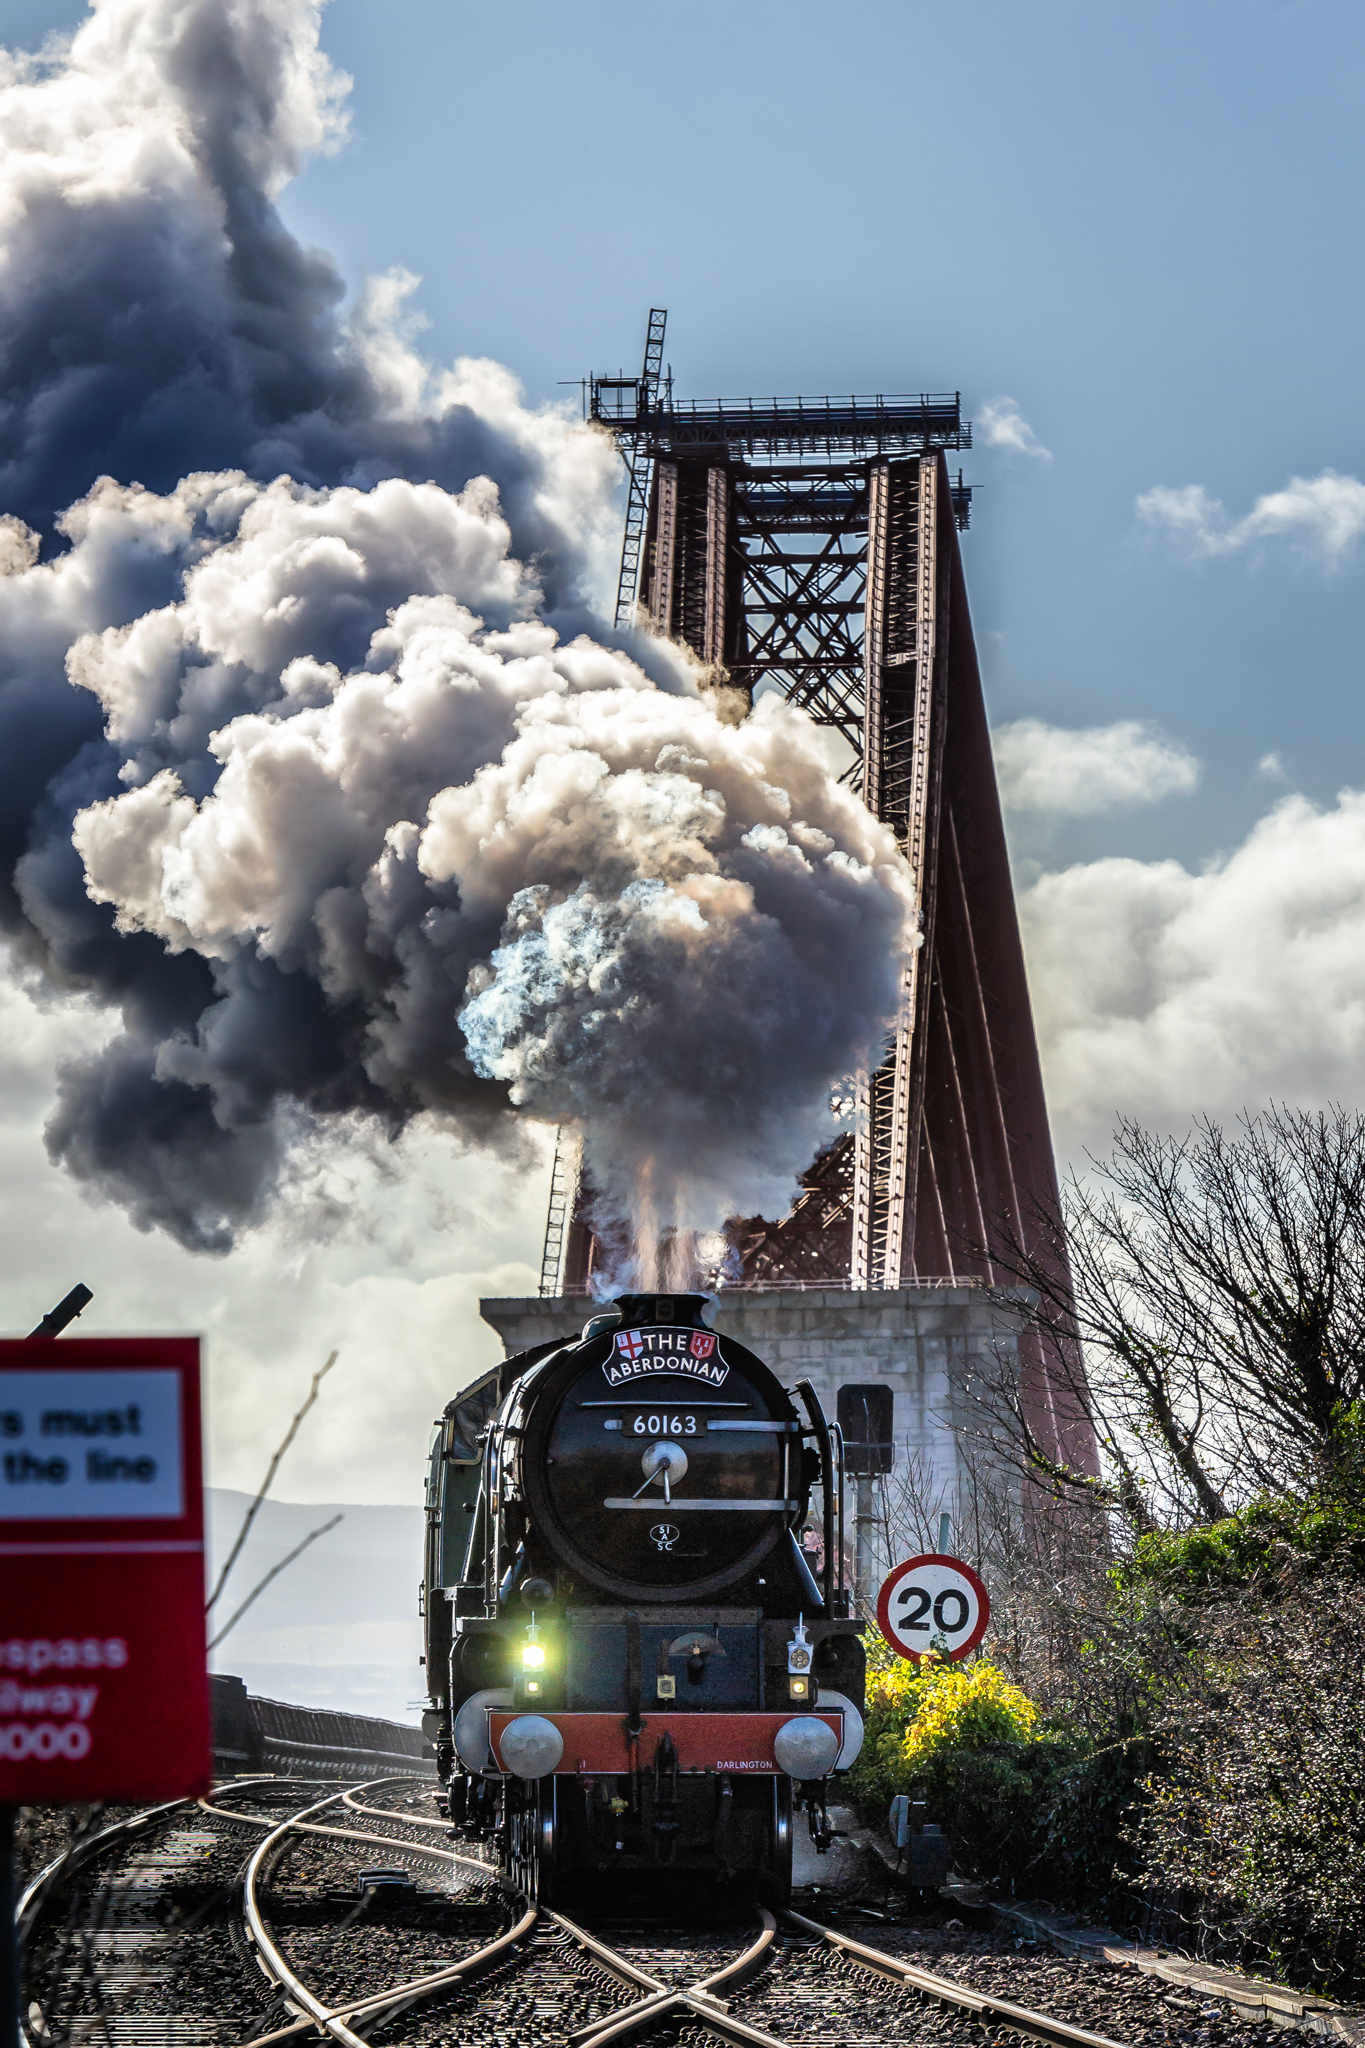 A steam train coming into Fife.